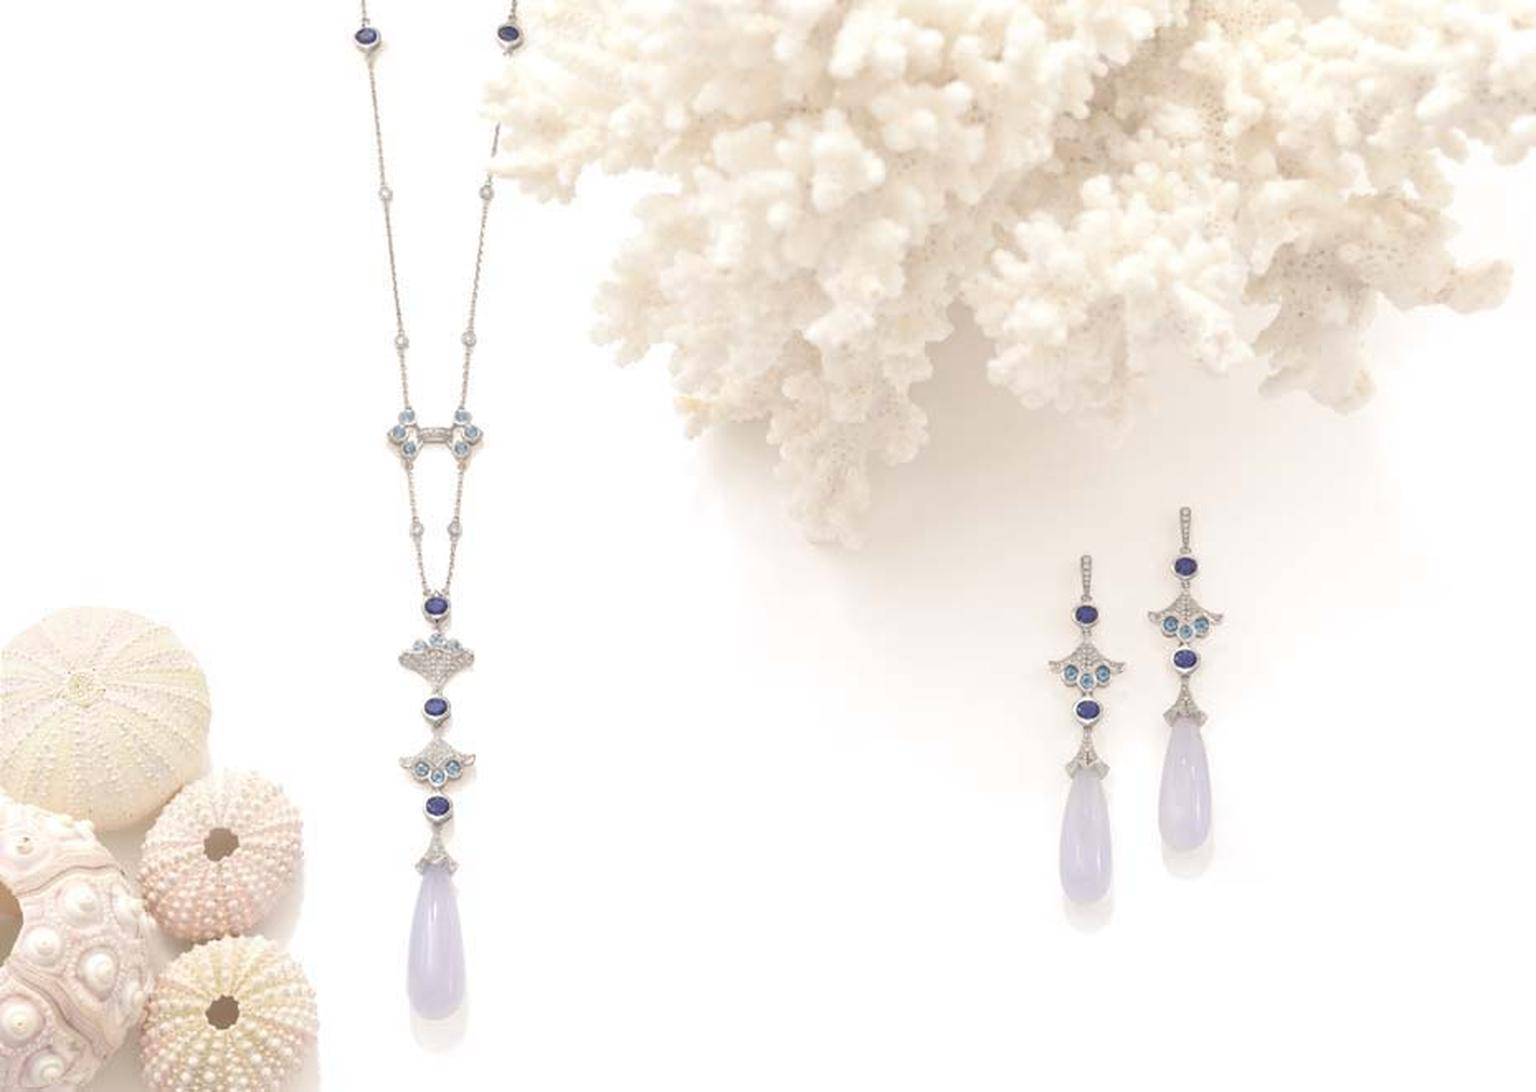 Boodles Ocean Moon necklace and earrings with chalcedony, tanzanites and diamonds, from the new 'Ocean of Dreams' collection.